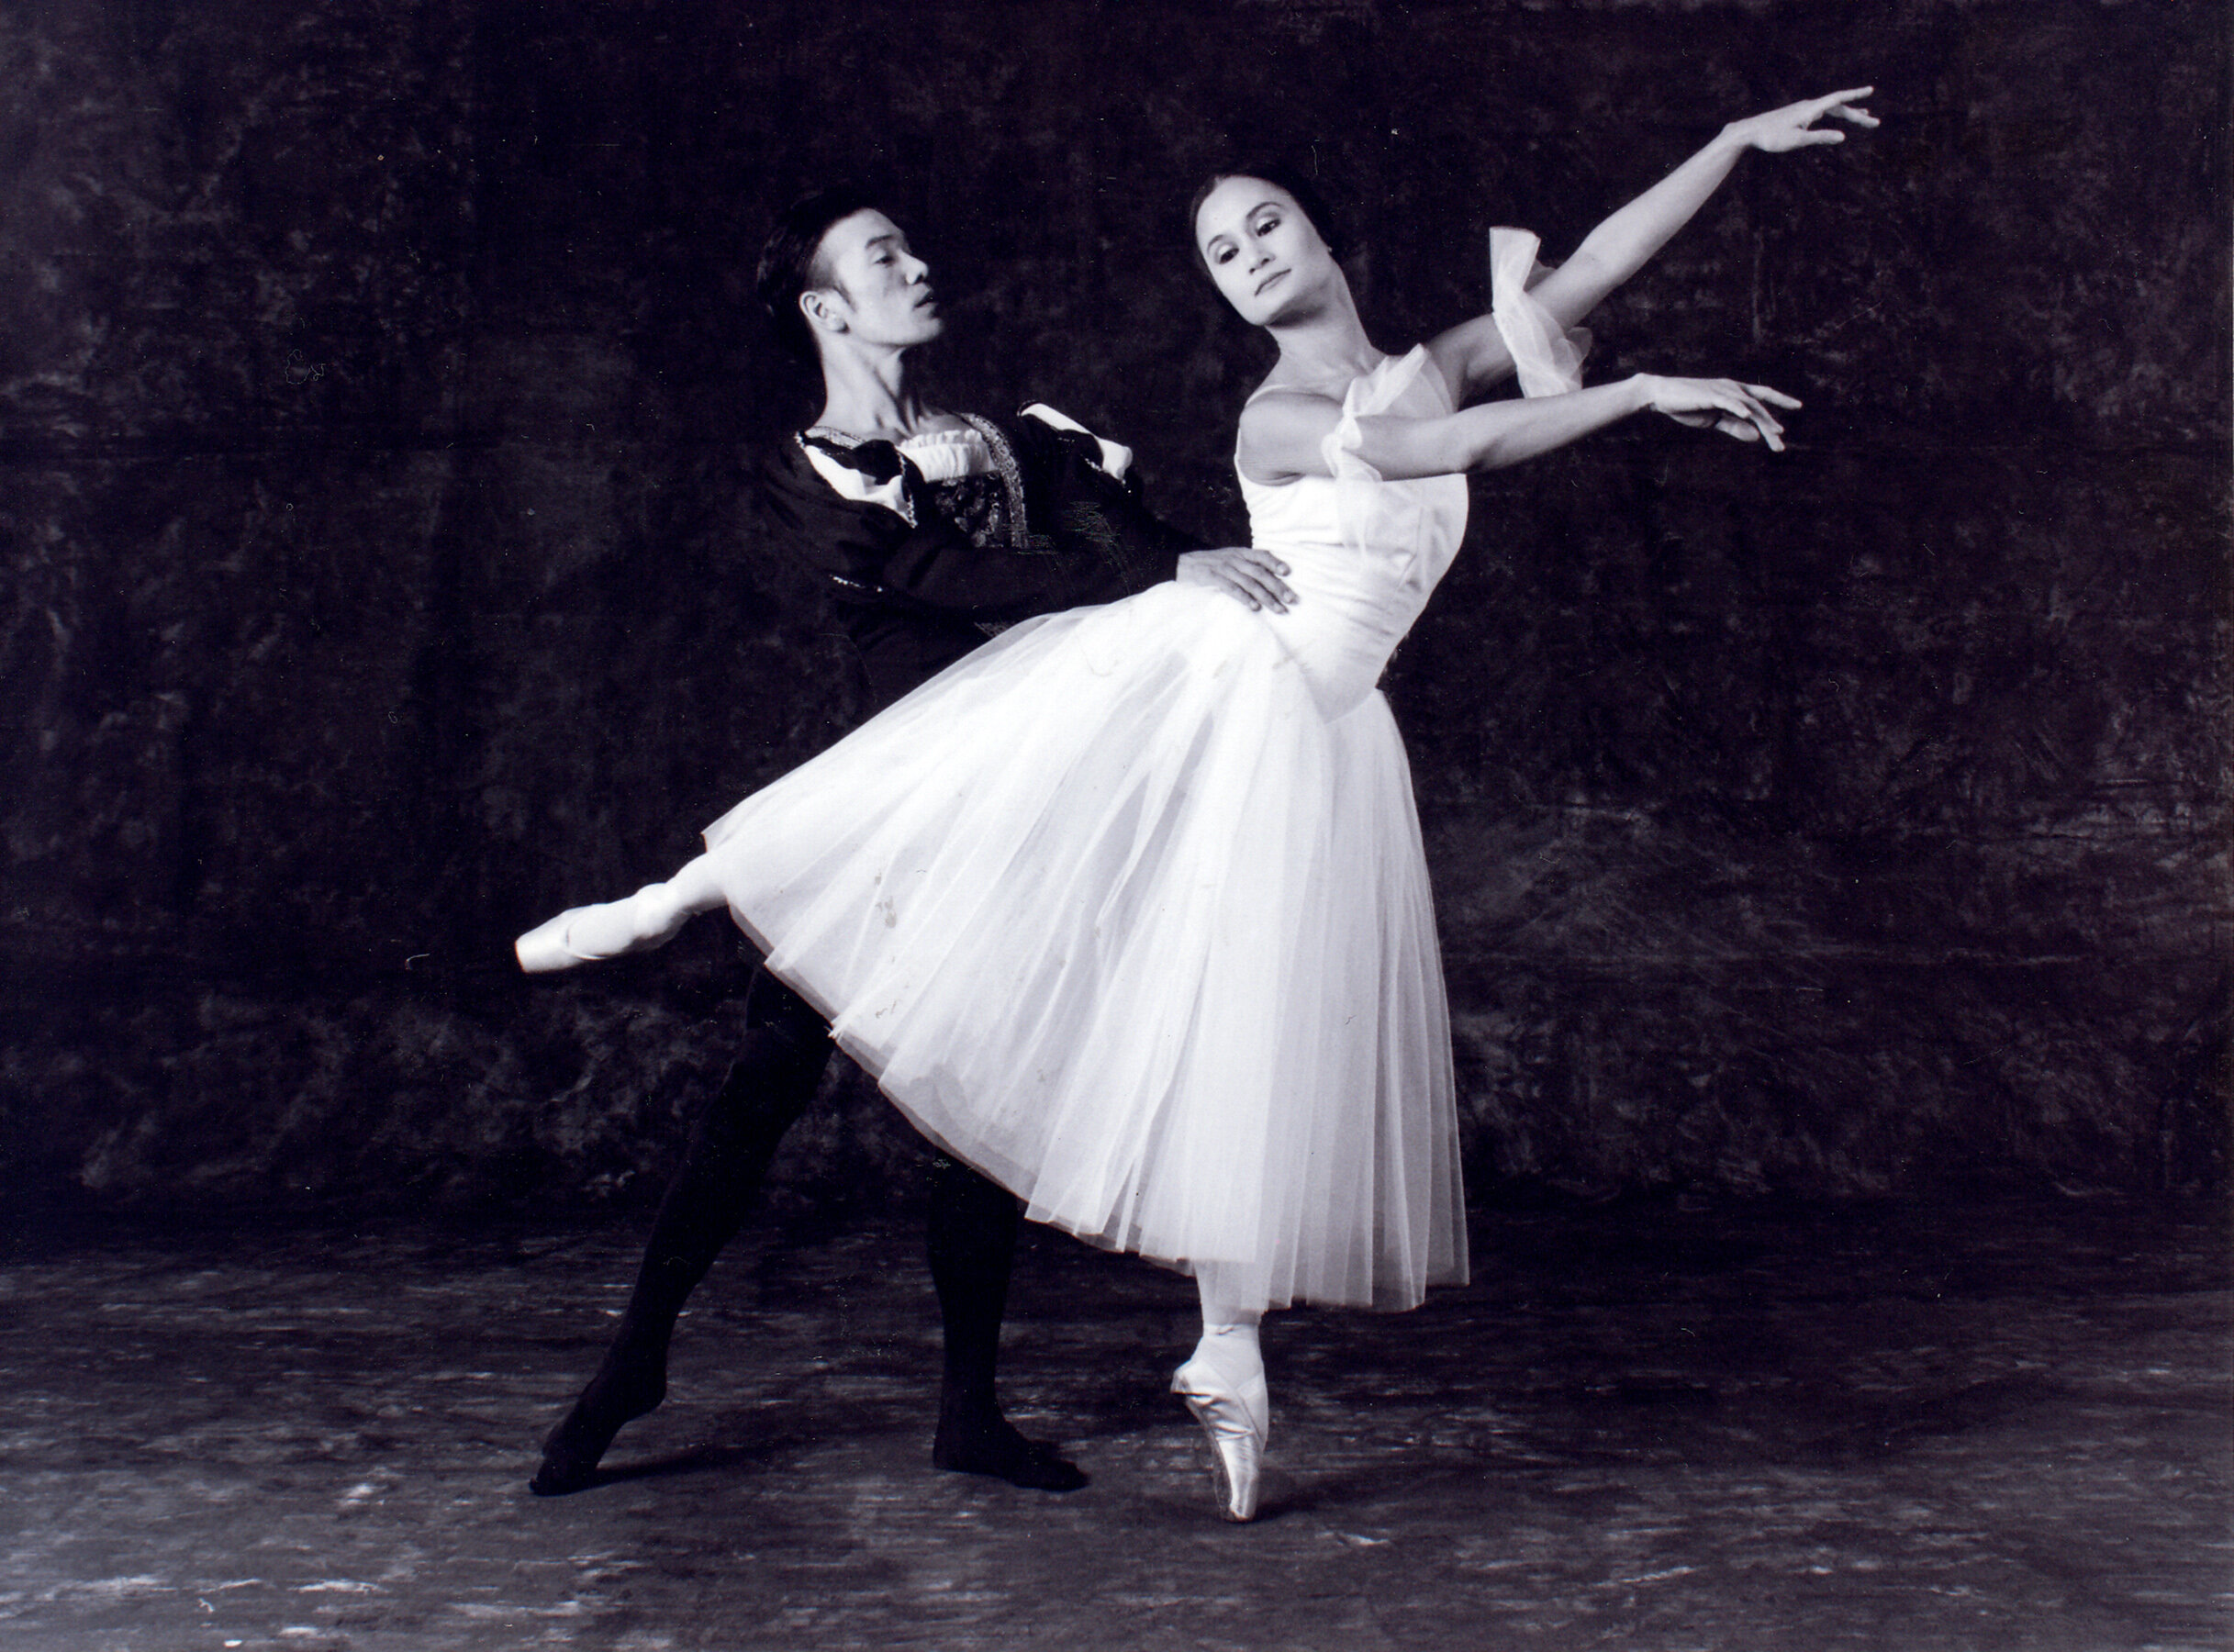 Osias Barroso and Lisa Macuja-Elizalde as Albrecht and Giselle in the classic staged by Ballet Manila in 1997. Photo by Ocs Alvarez